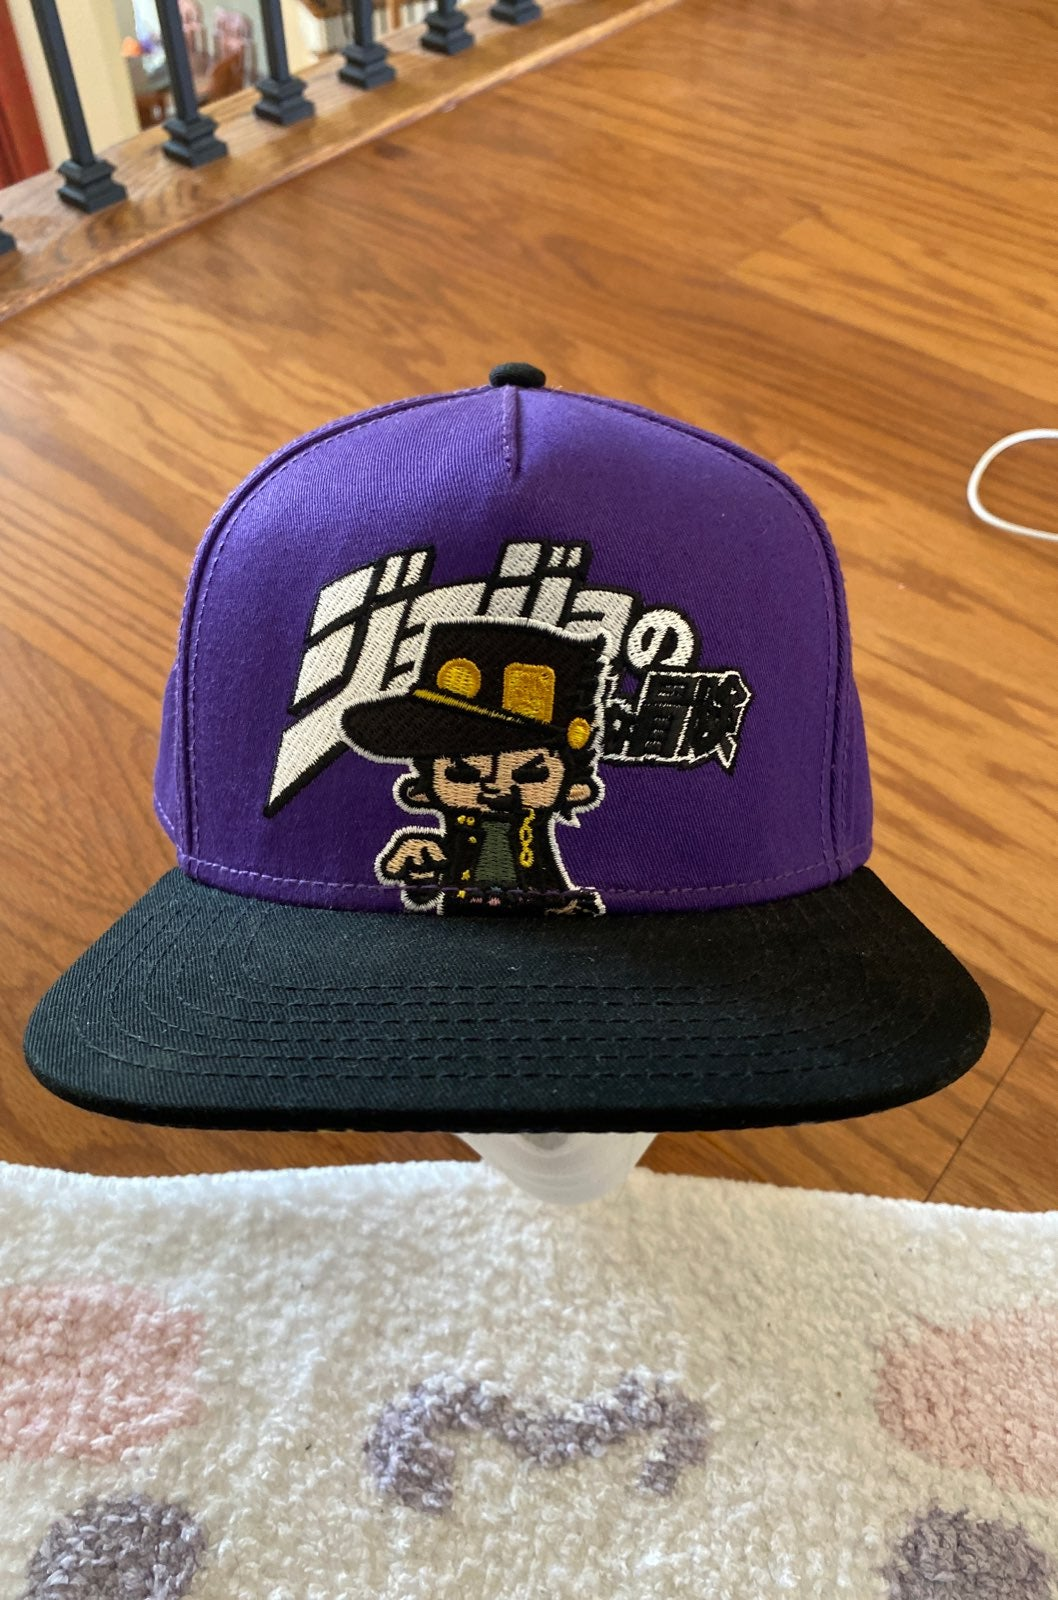 Jojo's Bizzare Adventure Snapback Hat